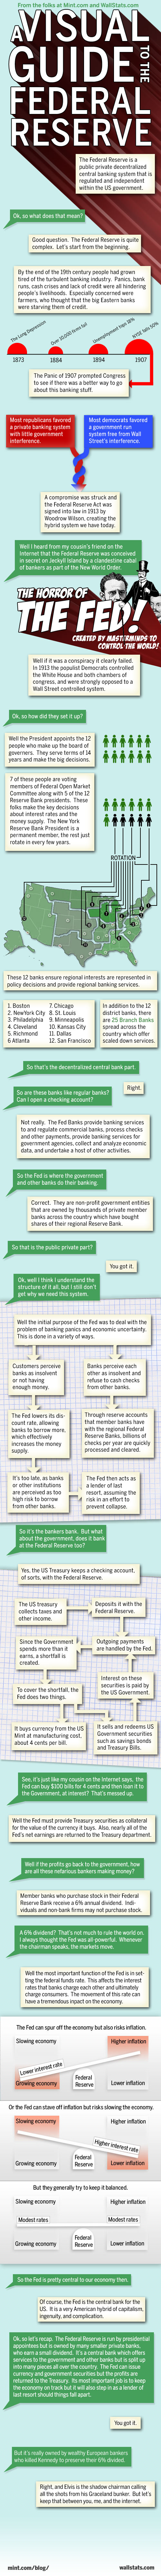 visualguidetothefederalreserve